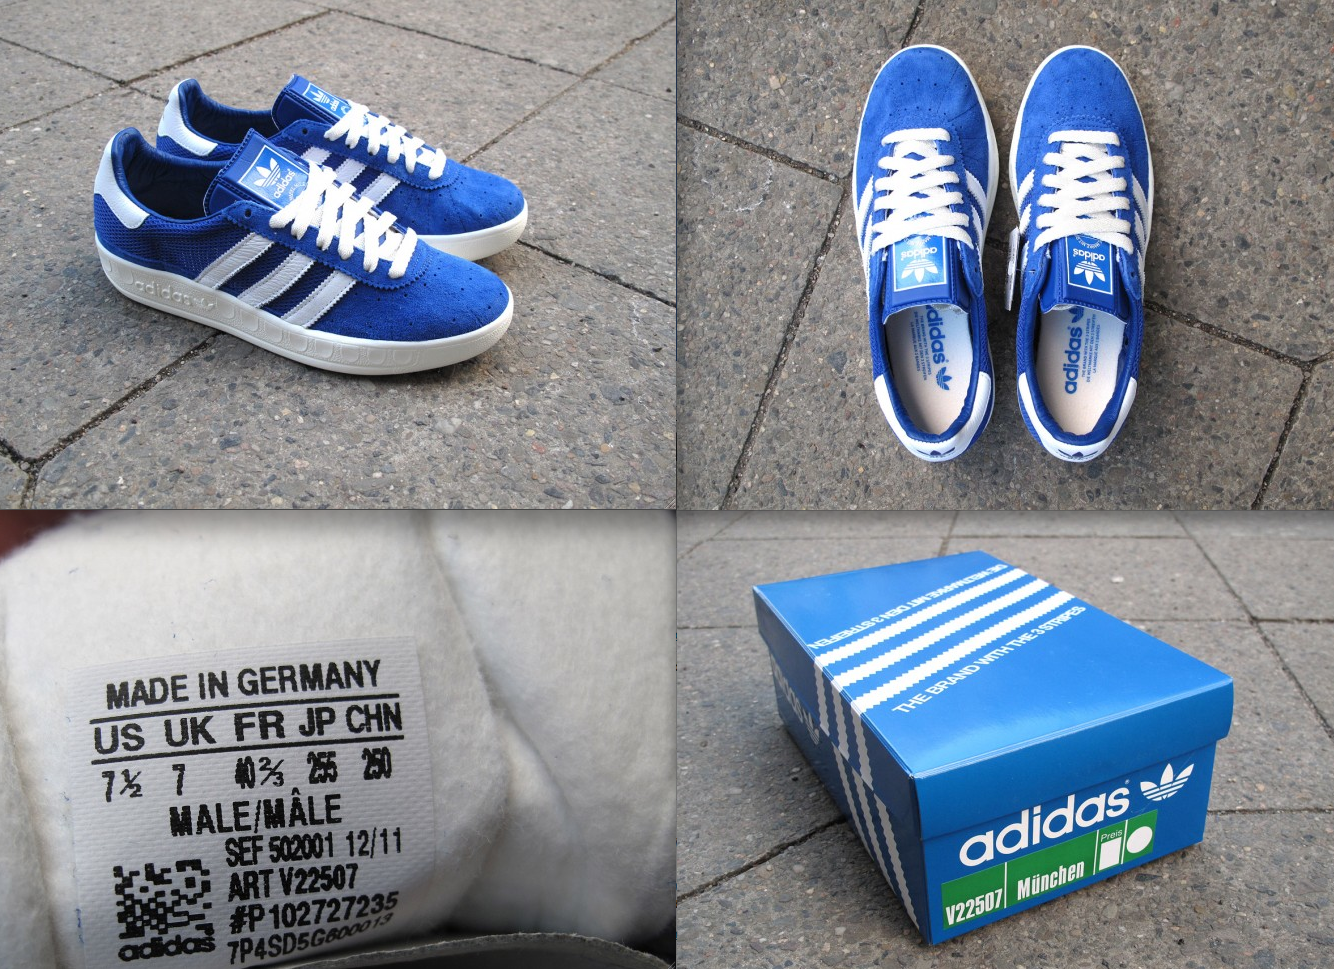 adidas shoes made in germany